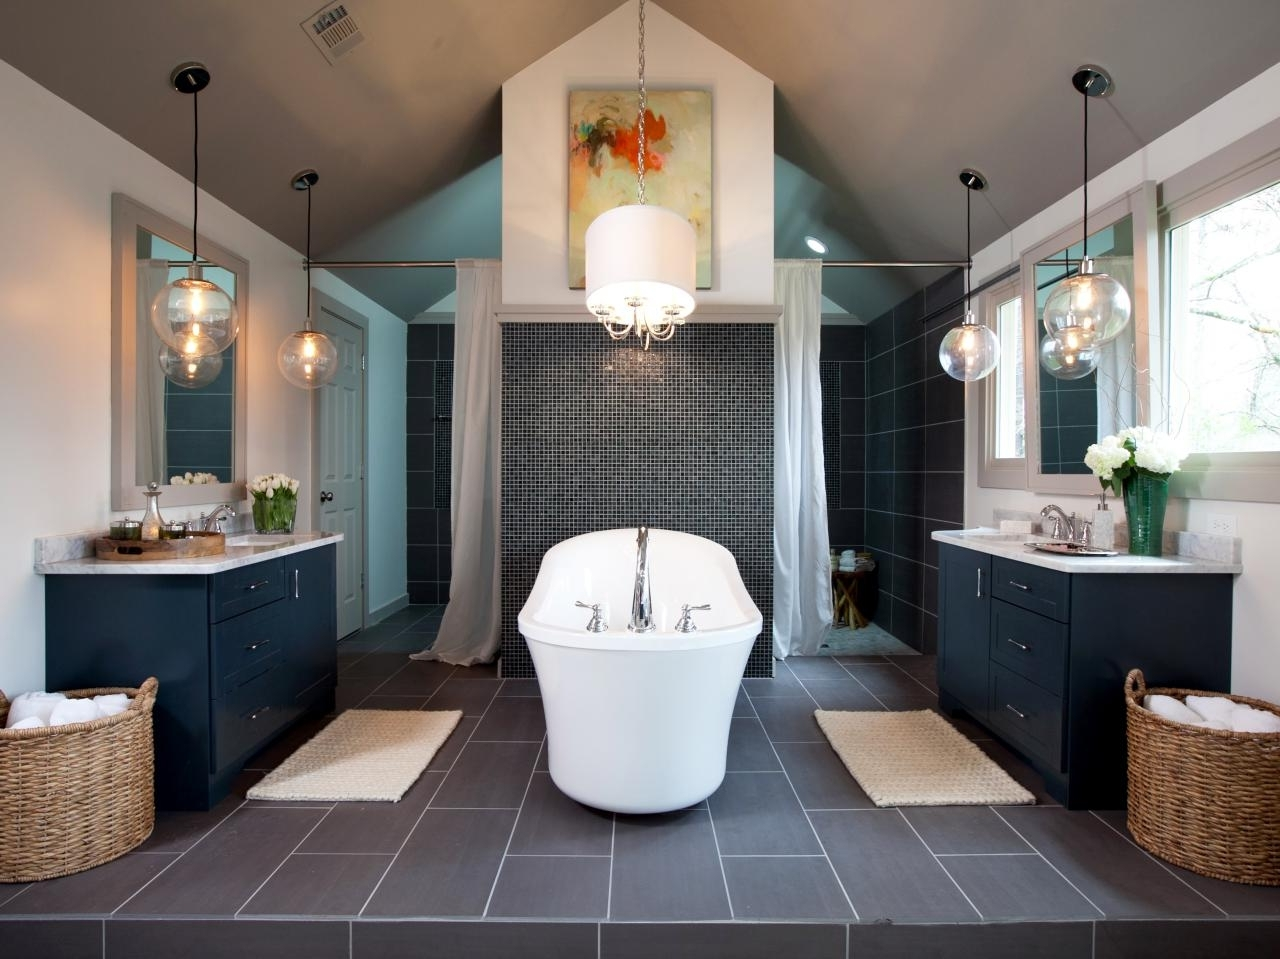 2018 Bathroom: Modern Bathroom Chandeliers With Gold Frame In Small In Modern Bathroom Chandeliers (View 1 of 15)